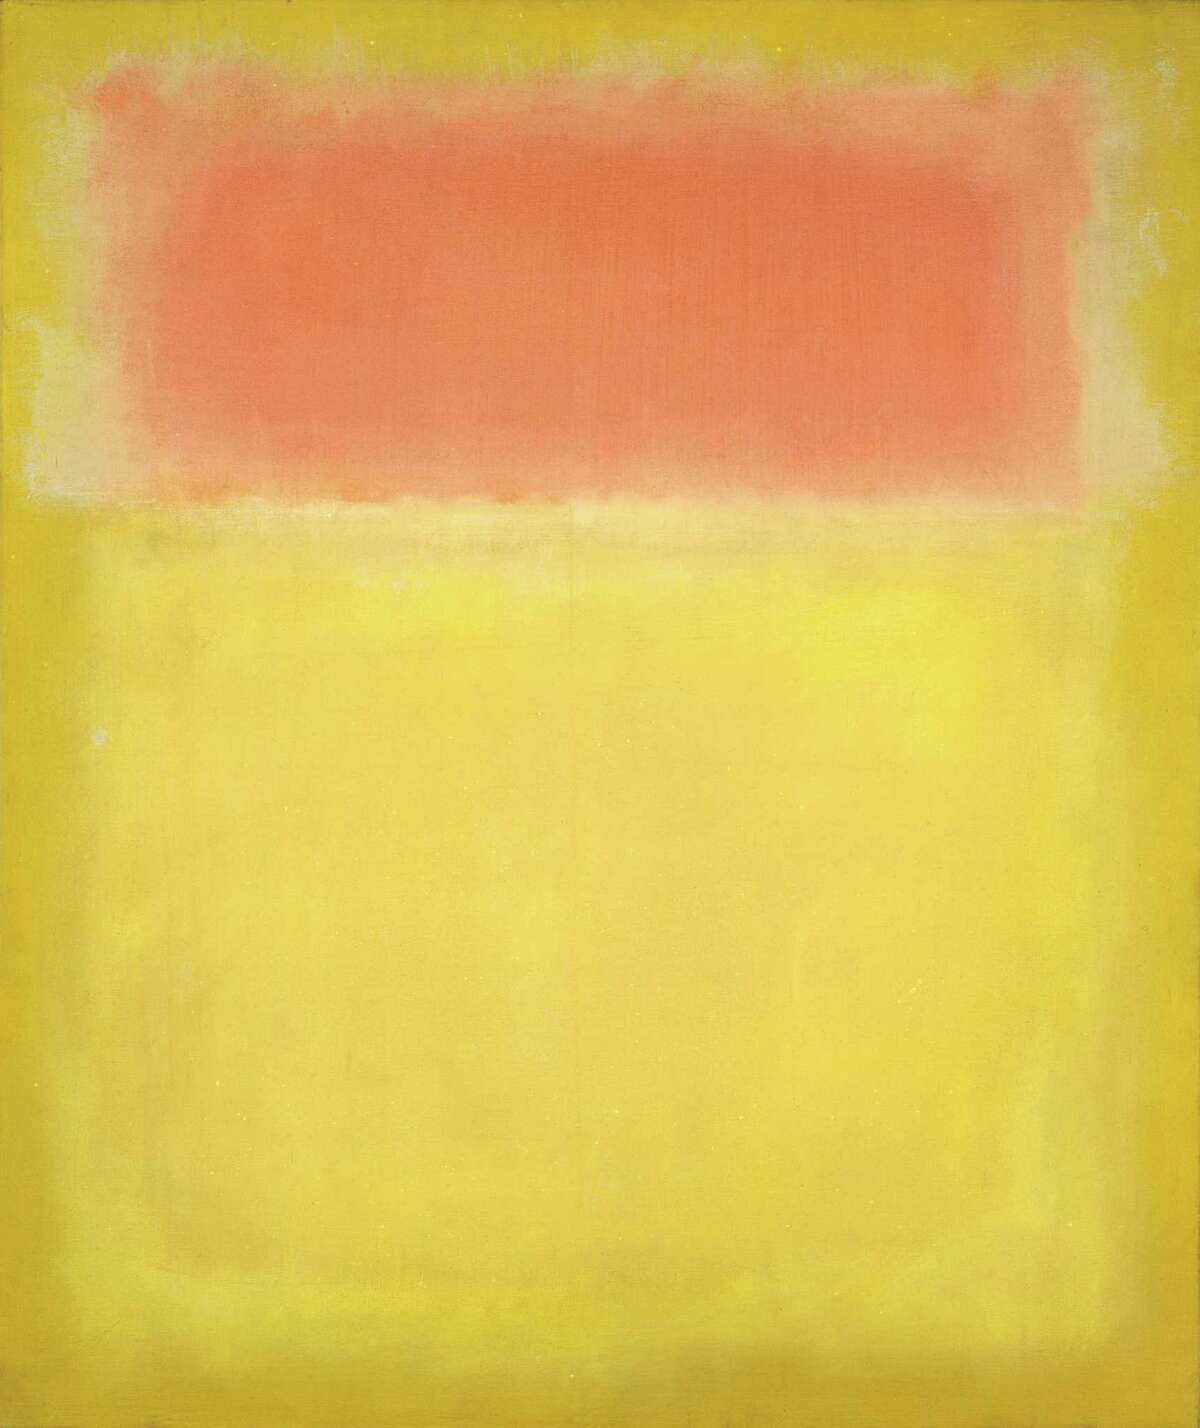 """Among works that will be on view Sept. 20 - Jan. 24 in the exhibition """"Mark Rothko: A Retrospective"""" at the Museum of Fine Arts, Houston is this untitled canvas from 1951 (oil on canvas, National Gallery of Art, Washington, Gift of The Mark Rothko Foundation, Inc. Â 1998 by Kate Rothko Prizel and Christopher Rothko)"""